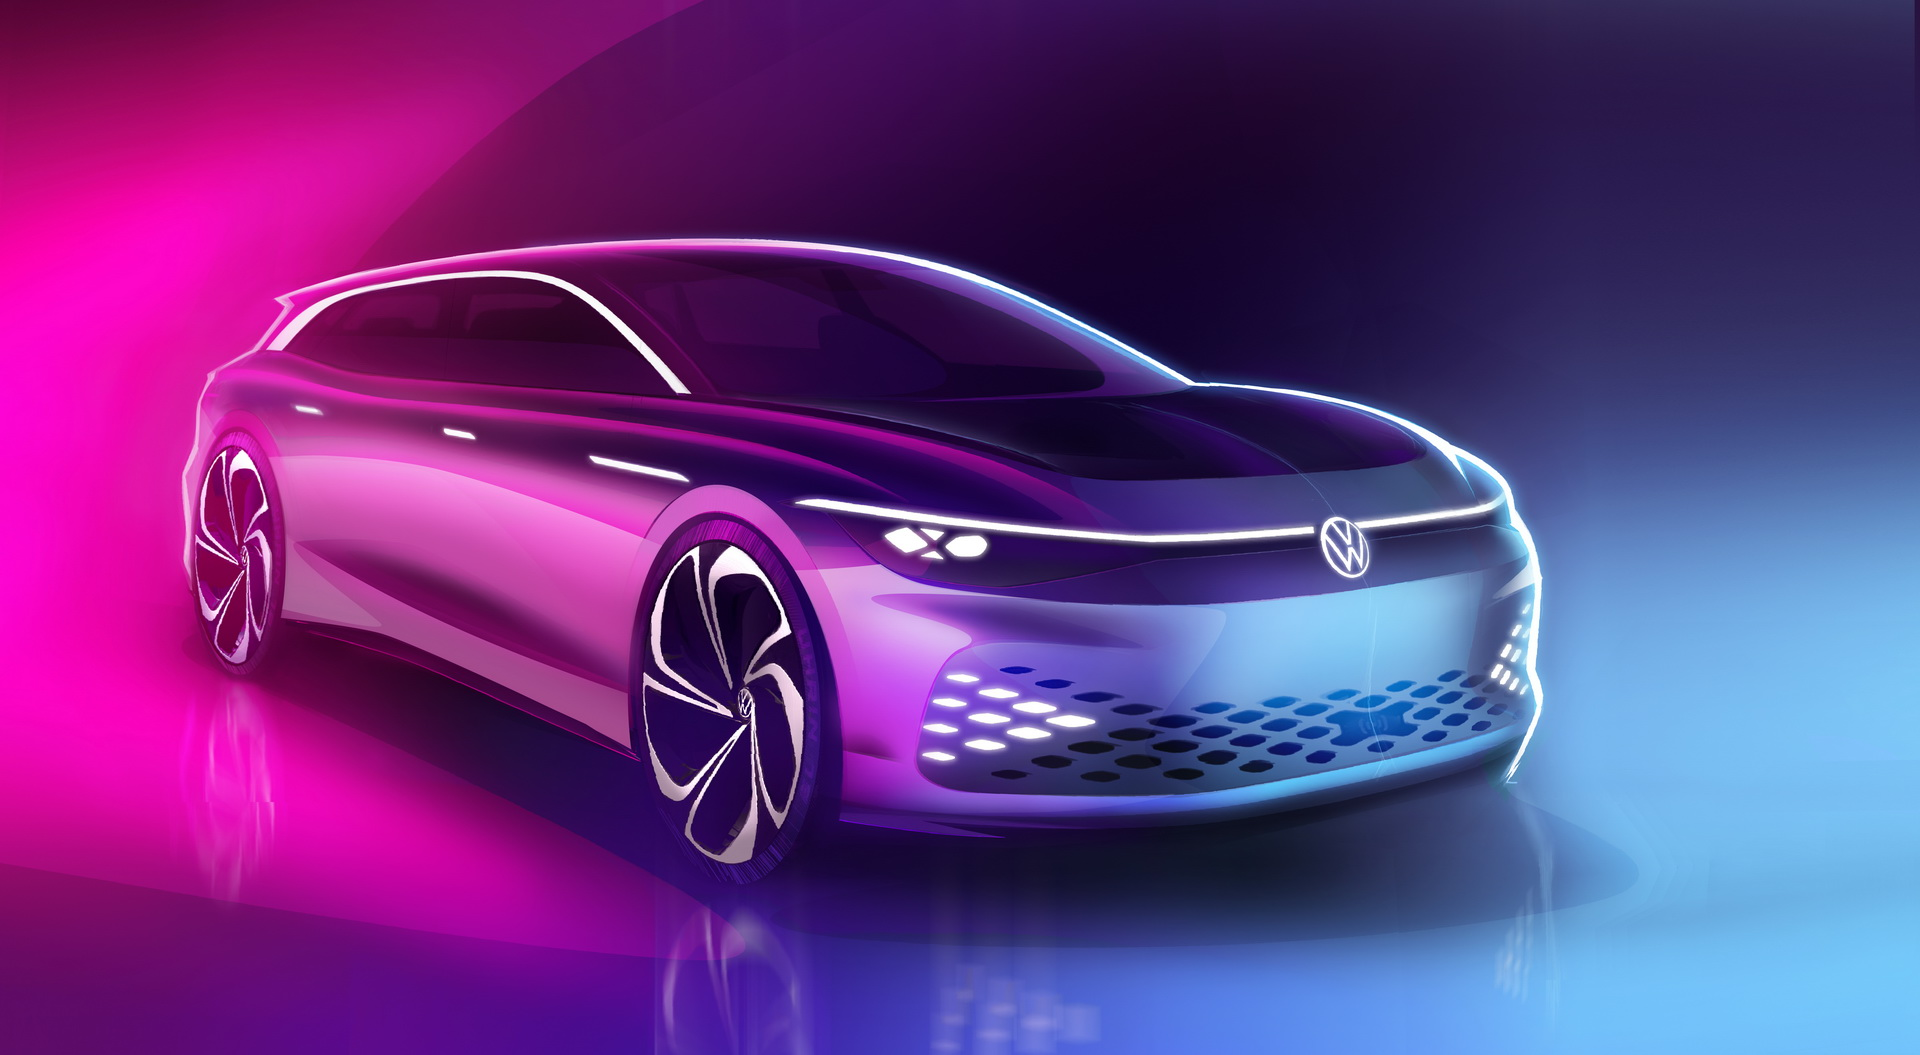 VW-ID-SPACE-VIZZION-CONCEPT-01